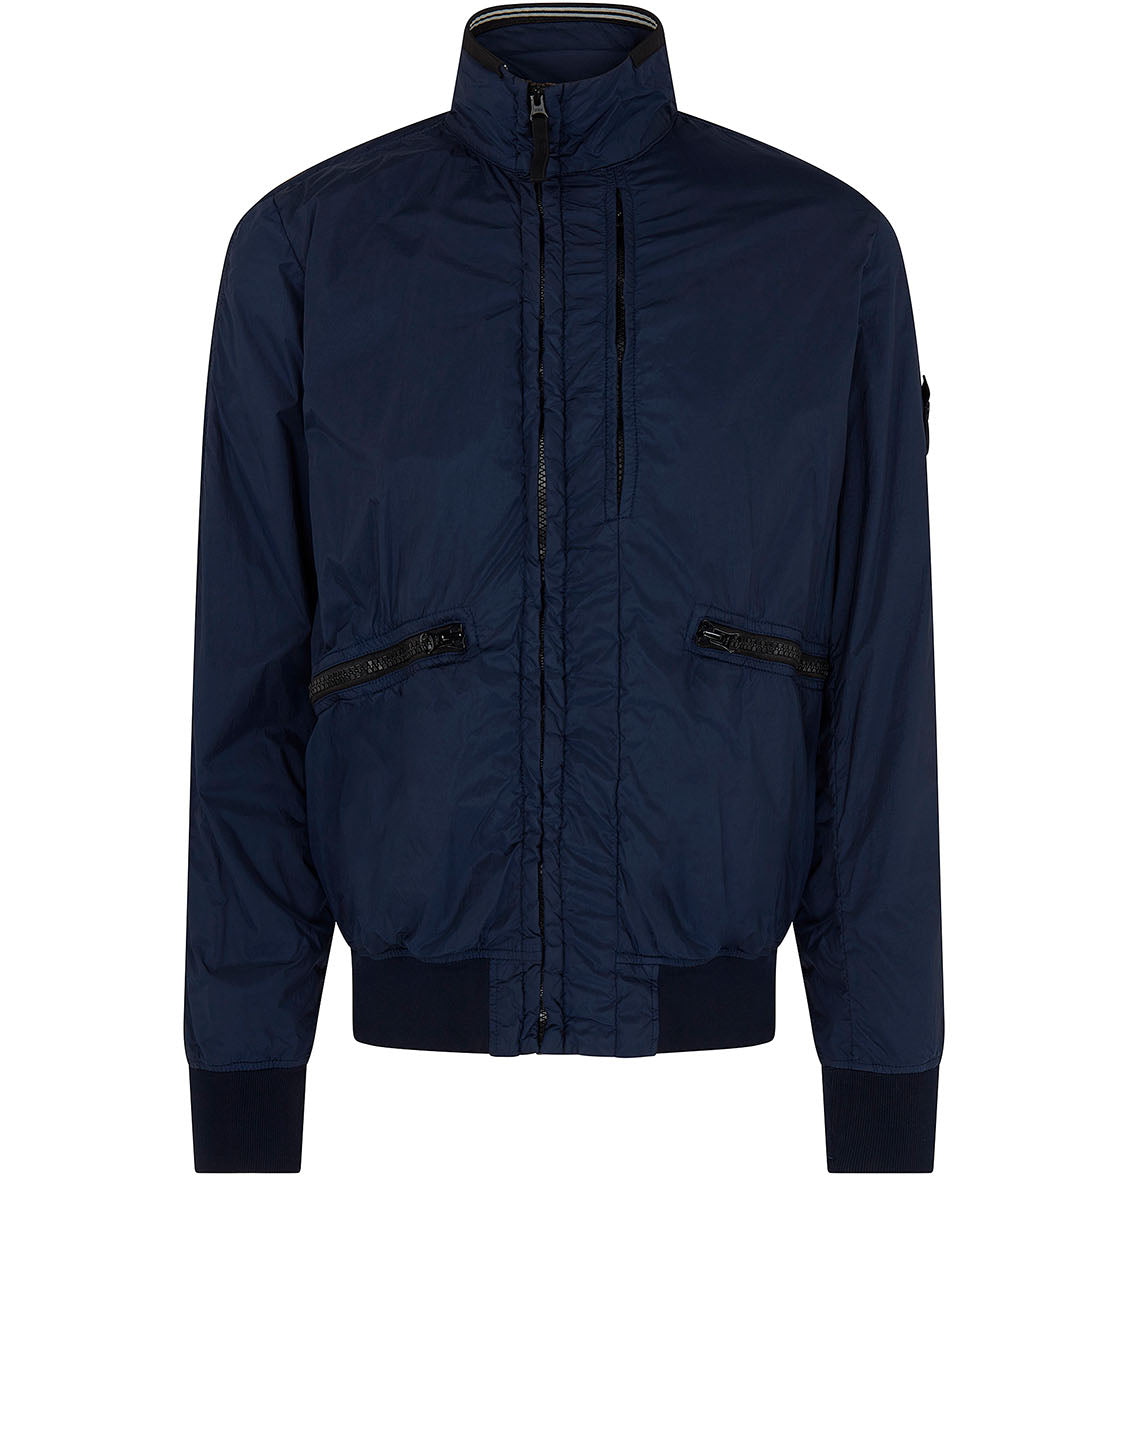 40930 GARMENT DYED CRINKLE REPS NY Jacket in Blue Marine